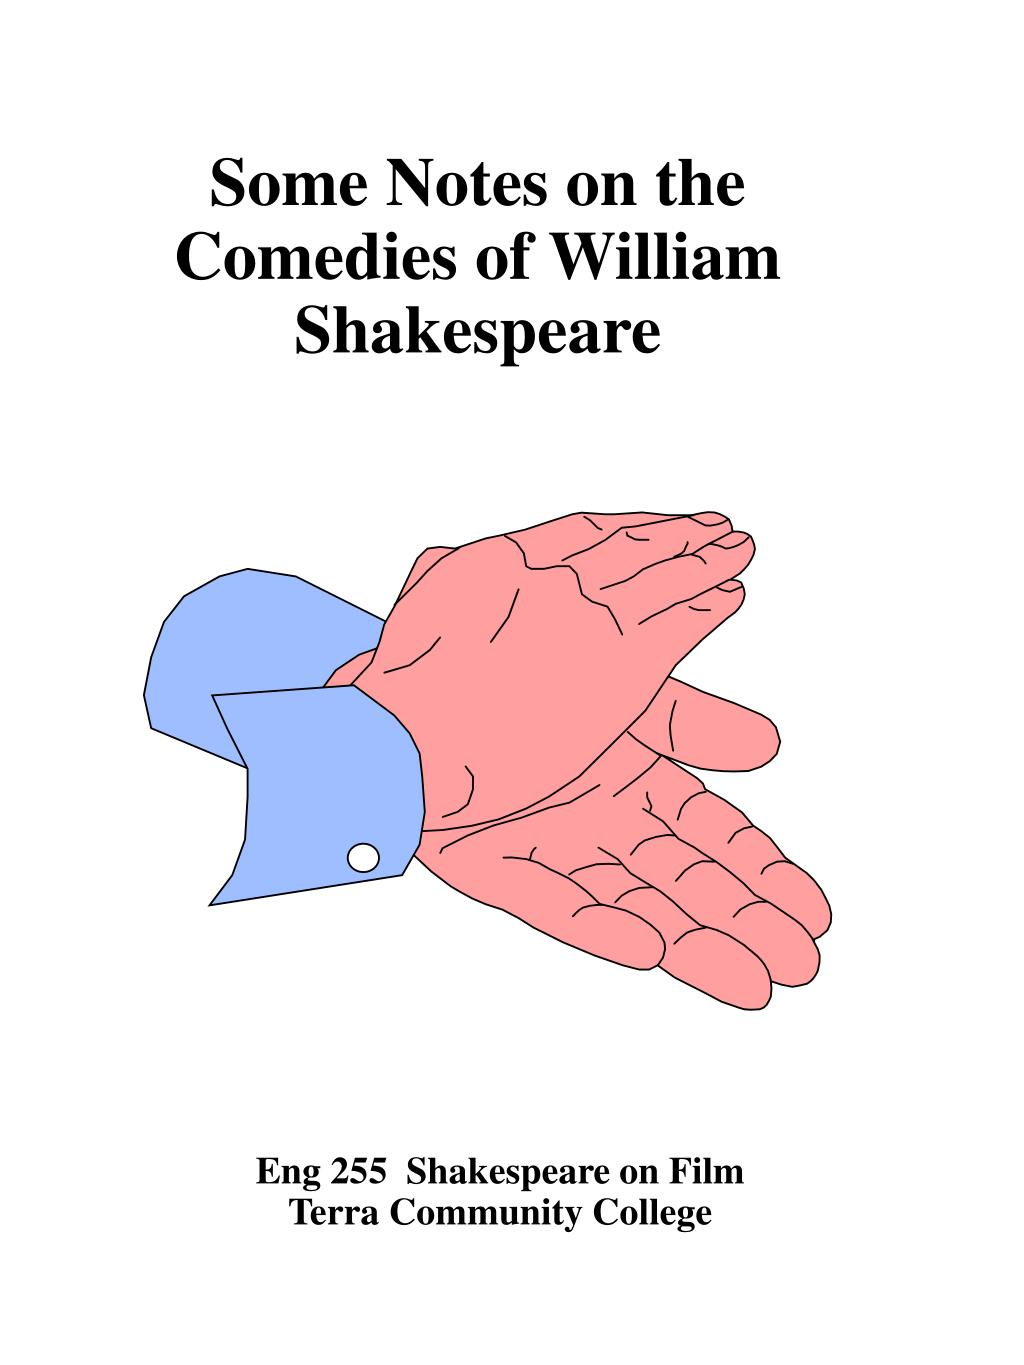 Some Notes on the Comedies of William Shakespeare